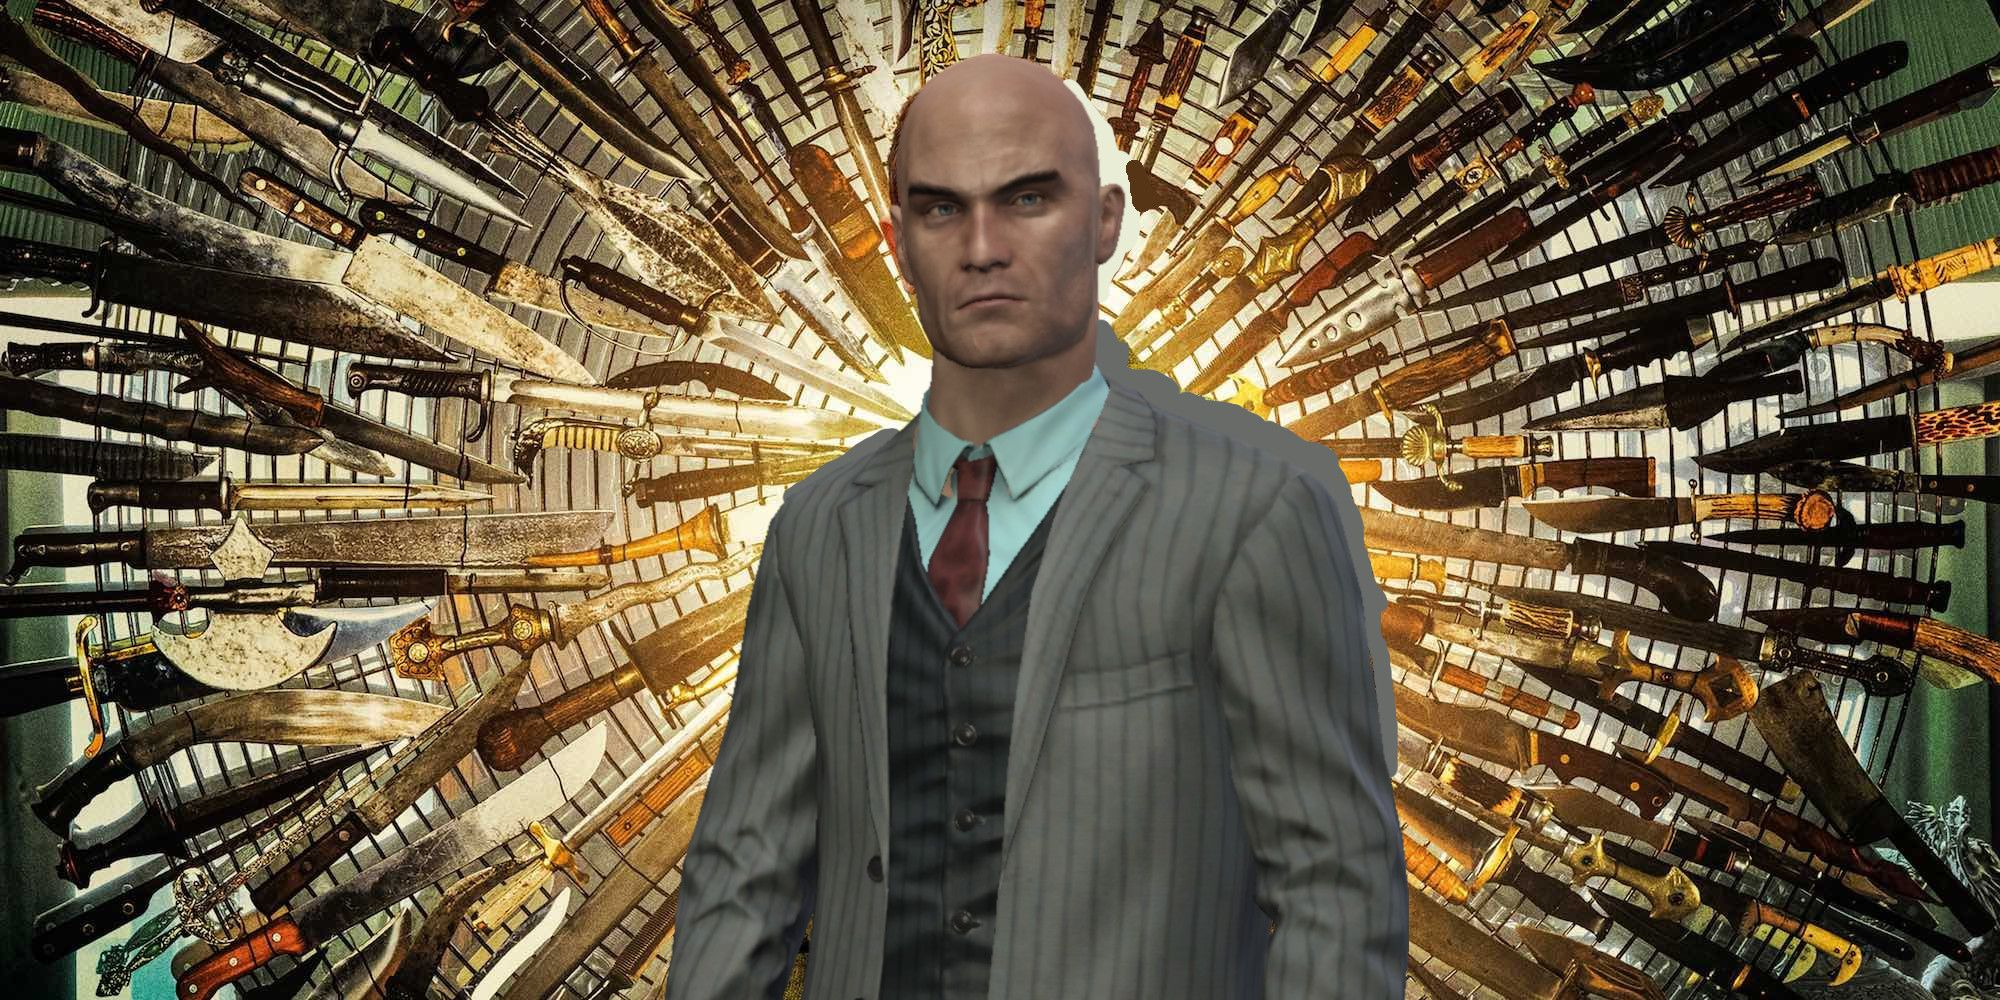 Hitman 3 S Knives Out Inspired Level Is Something We Didn T Know We Needed